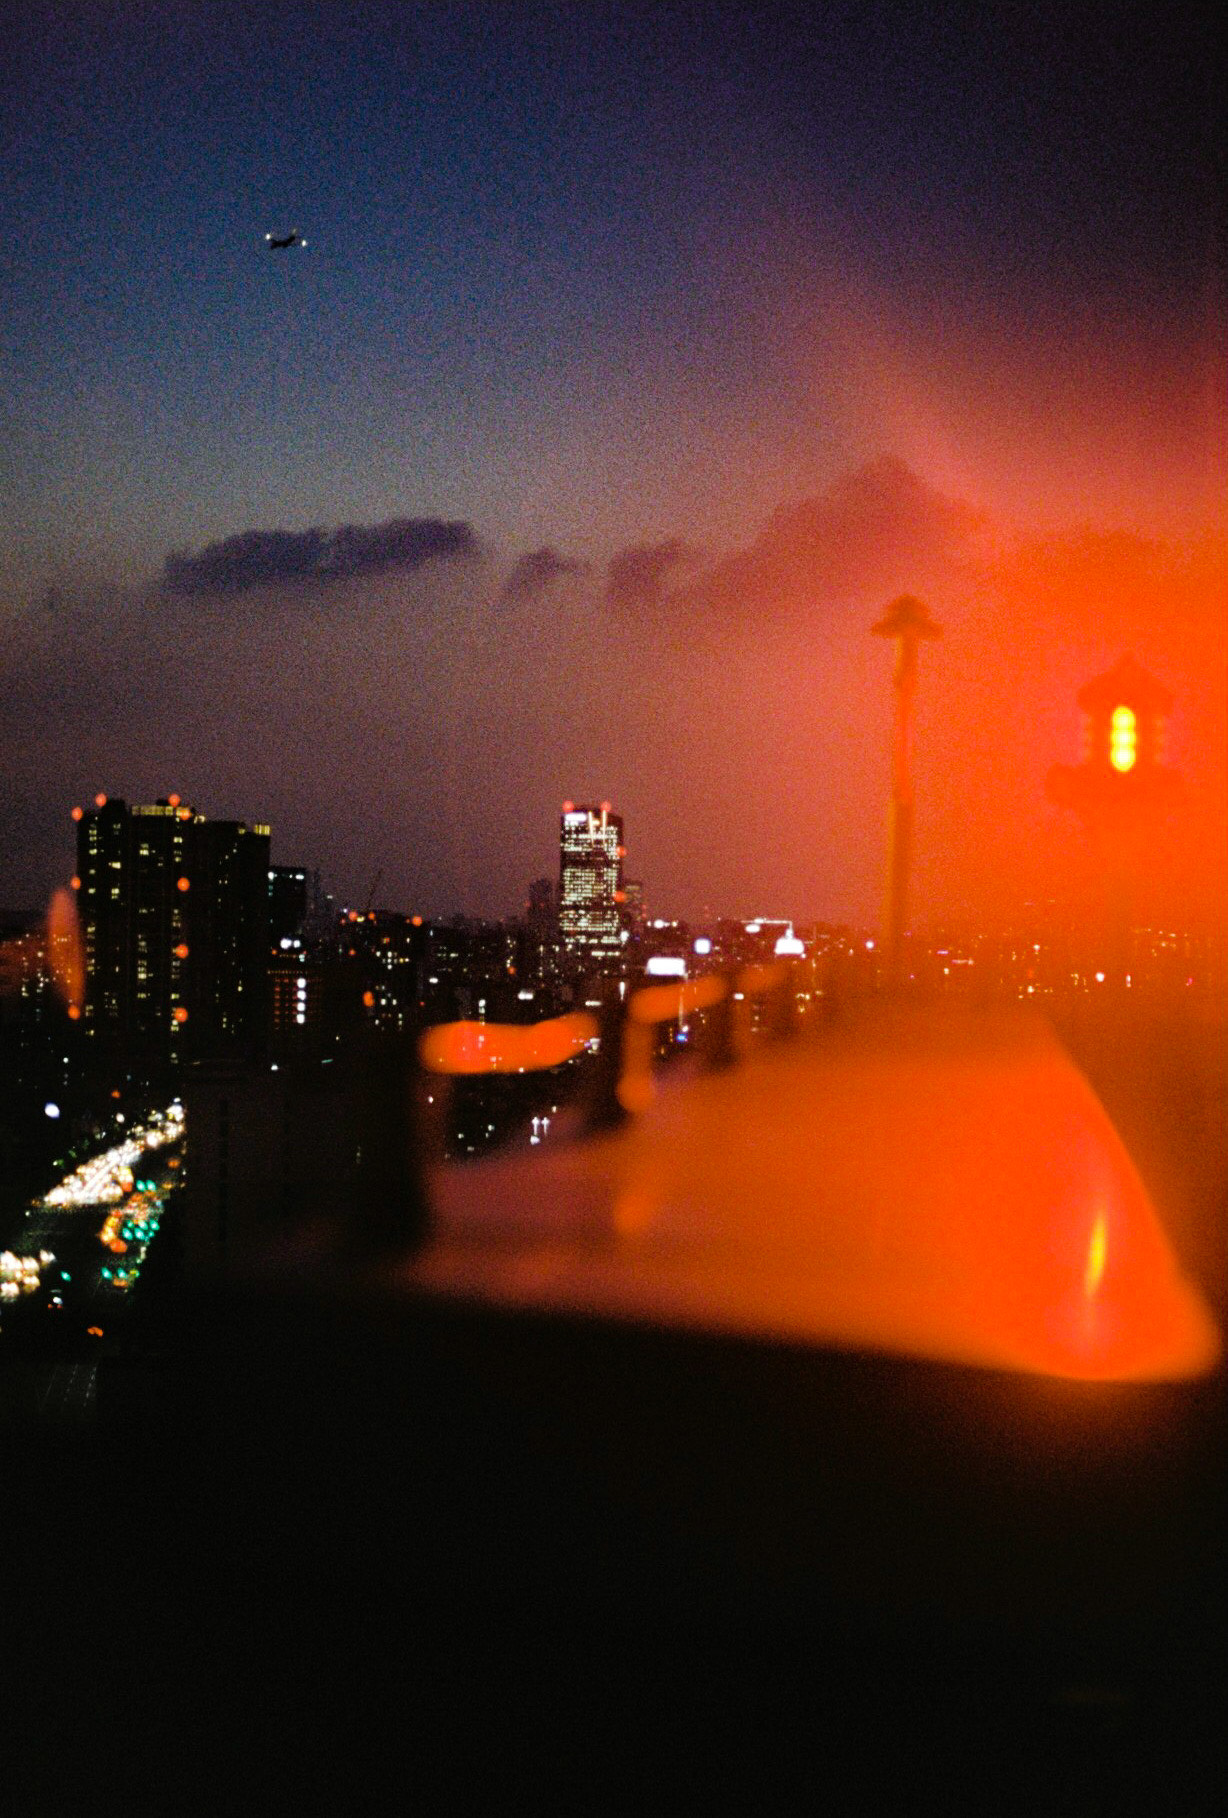 view of Seoul city skyline at night, the buildings and road lit up and highlighted by the flares of a red plane signal light.